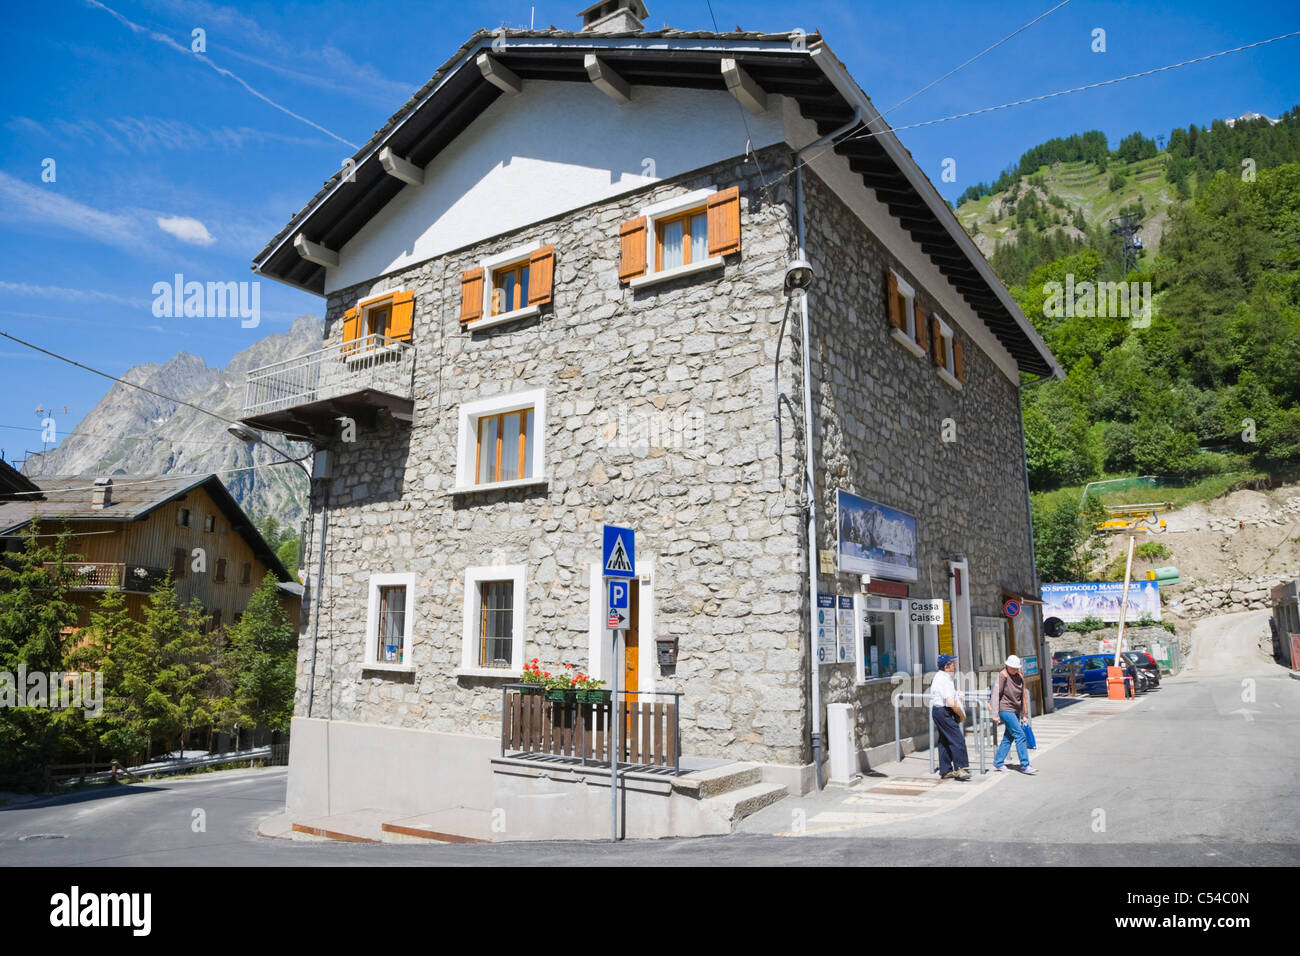 Funivie Monte Bianco, Mont Blanc Funicular, La Palud, Courmayeur Aosta, Aosta Valley, Valle d'Aosta, Italy, - Stock Image